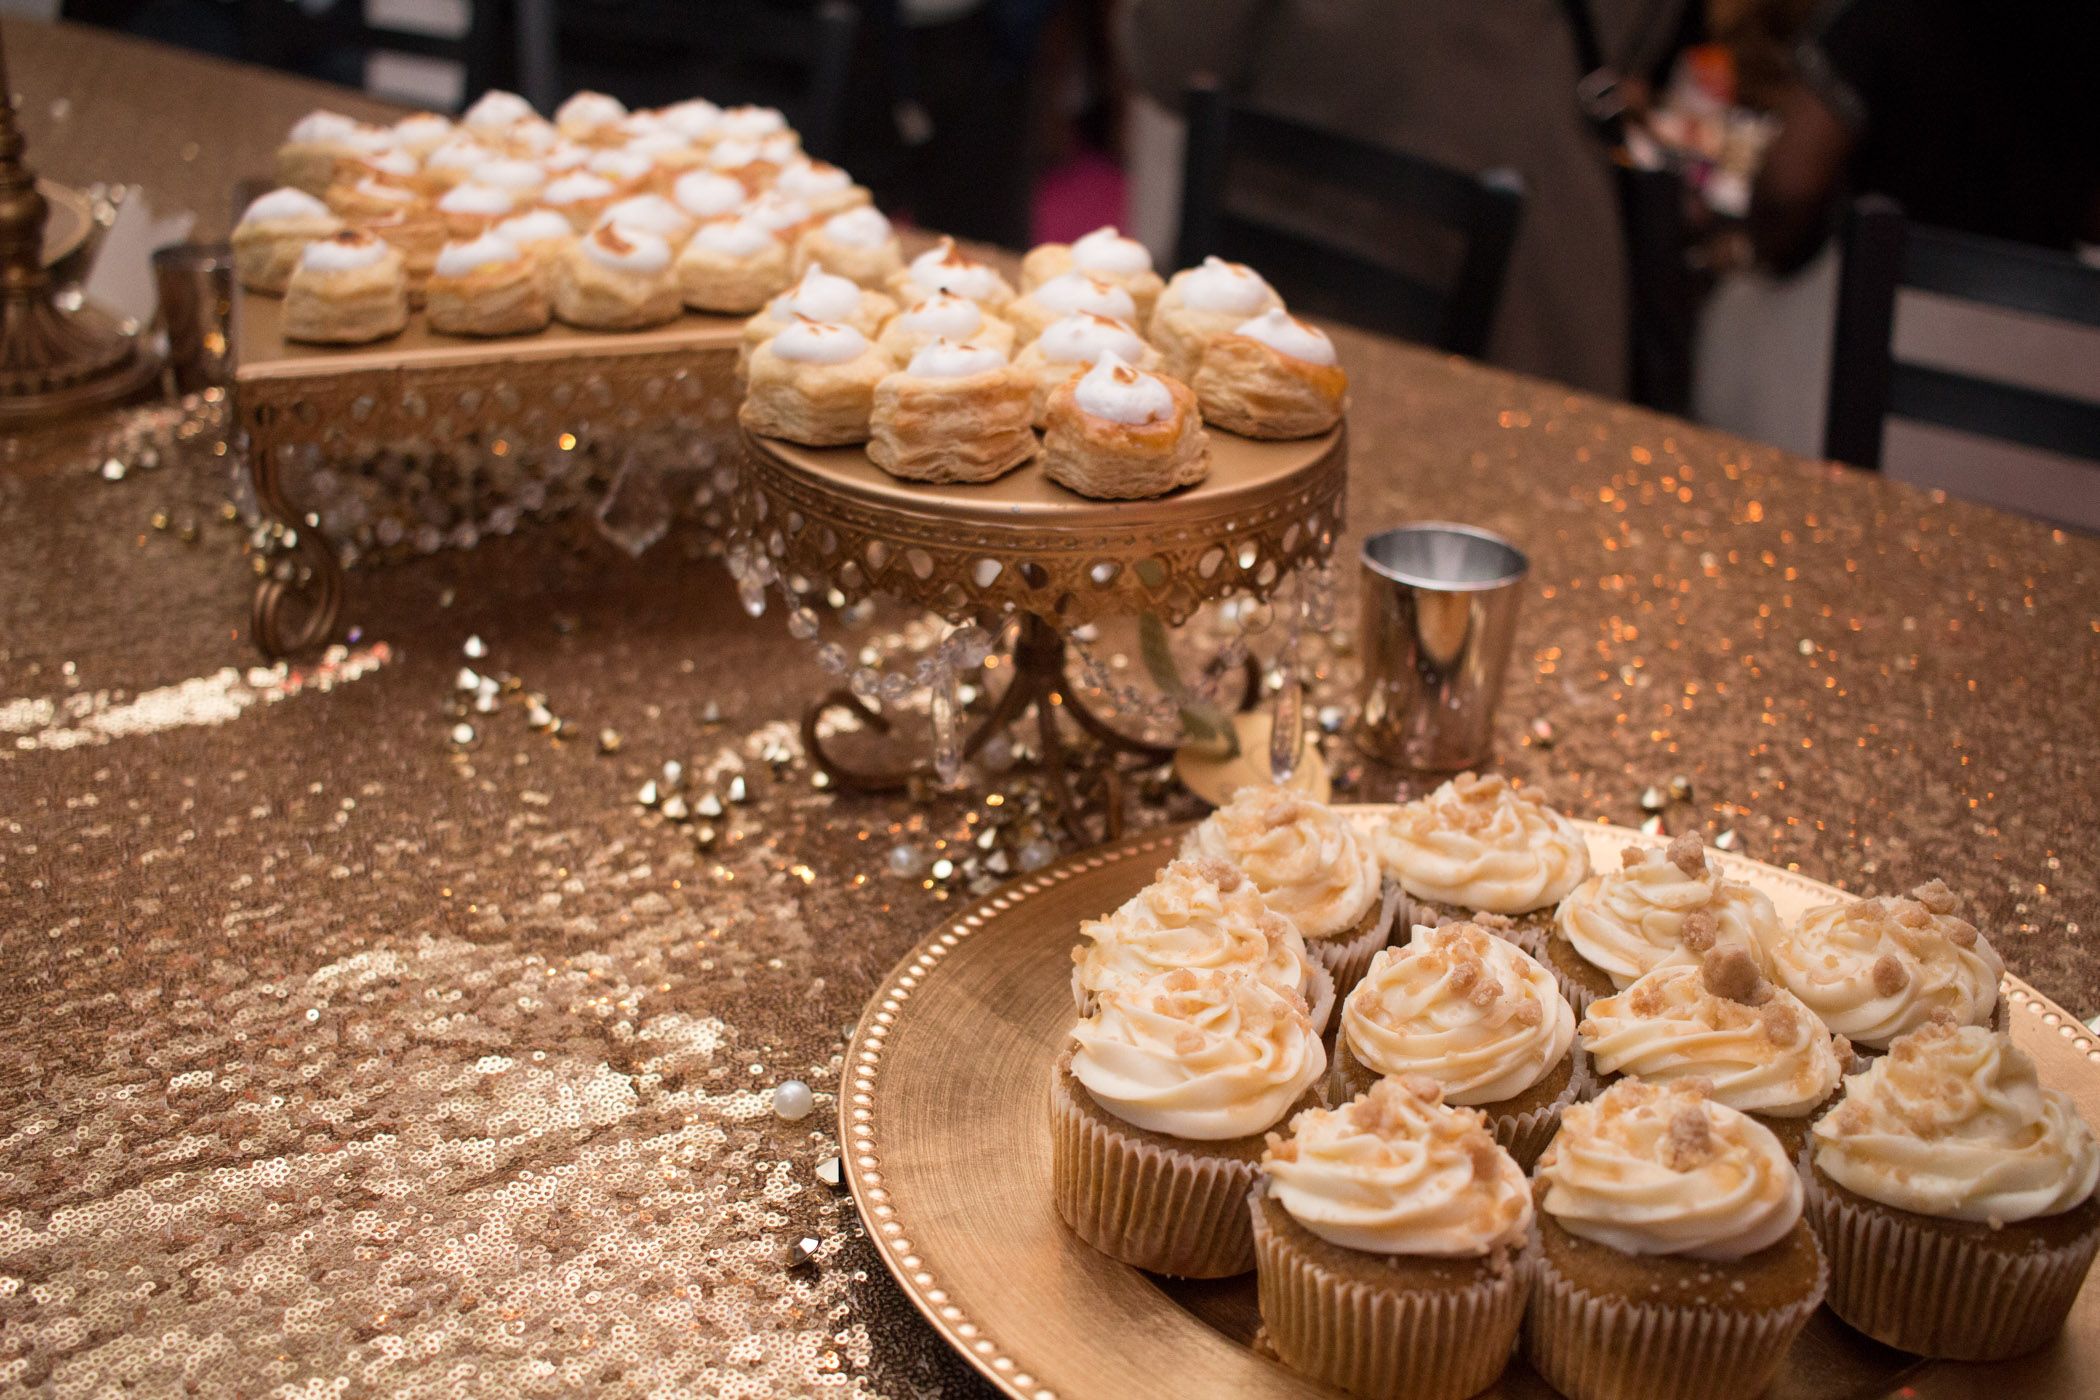 cupcakes and pies.jpg